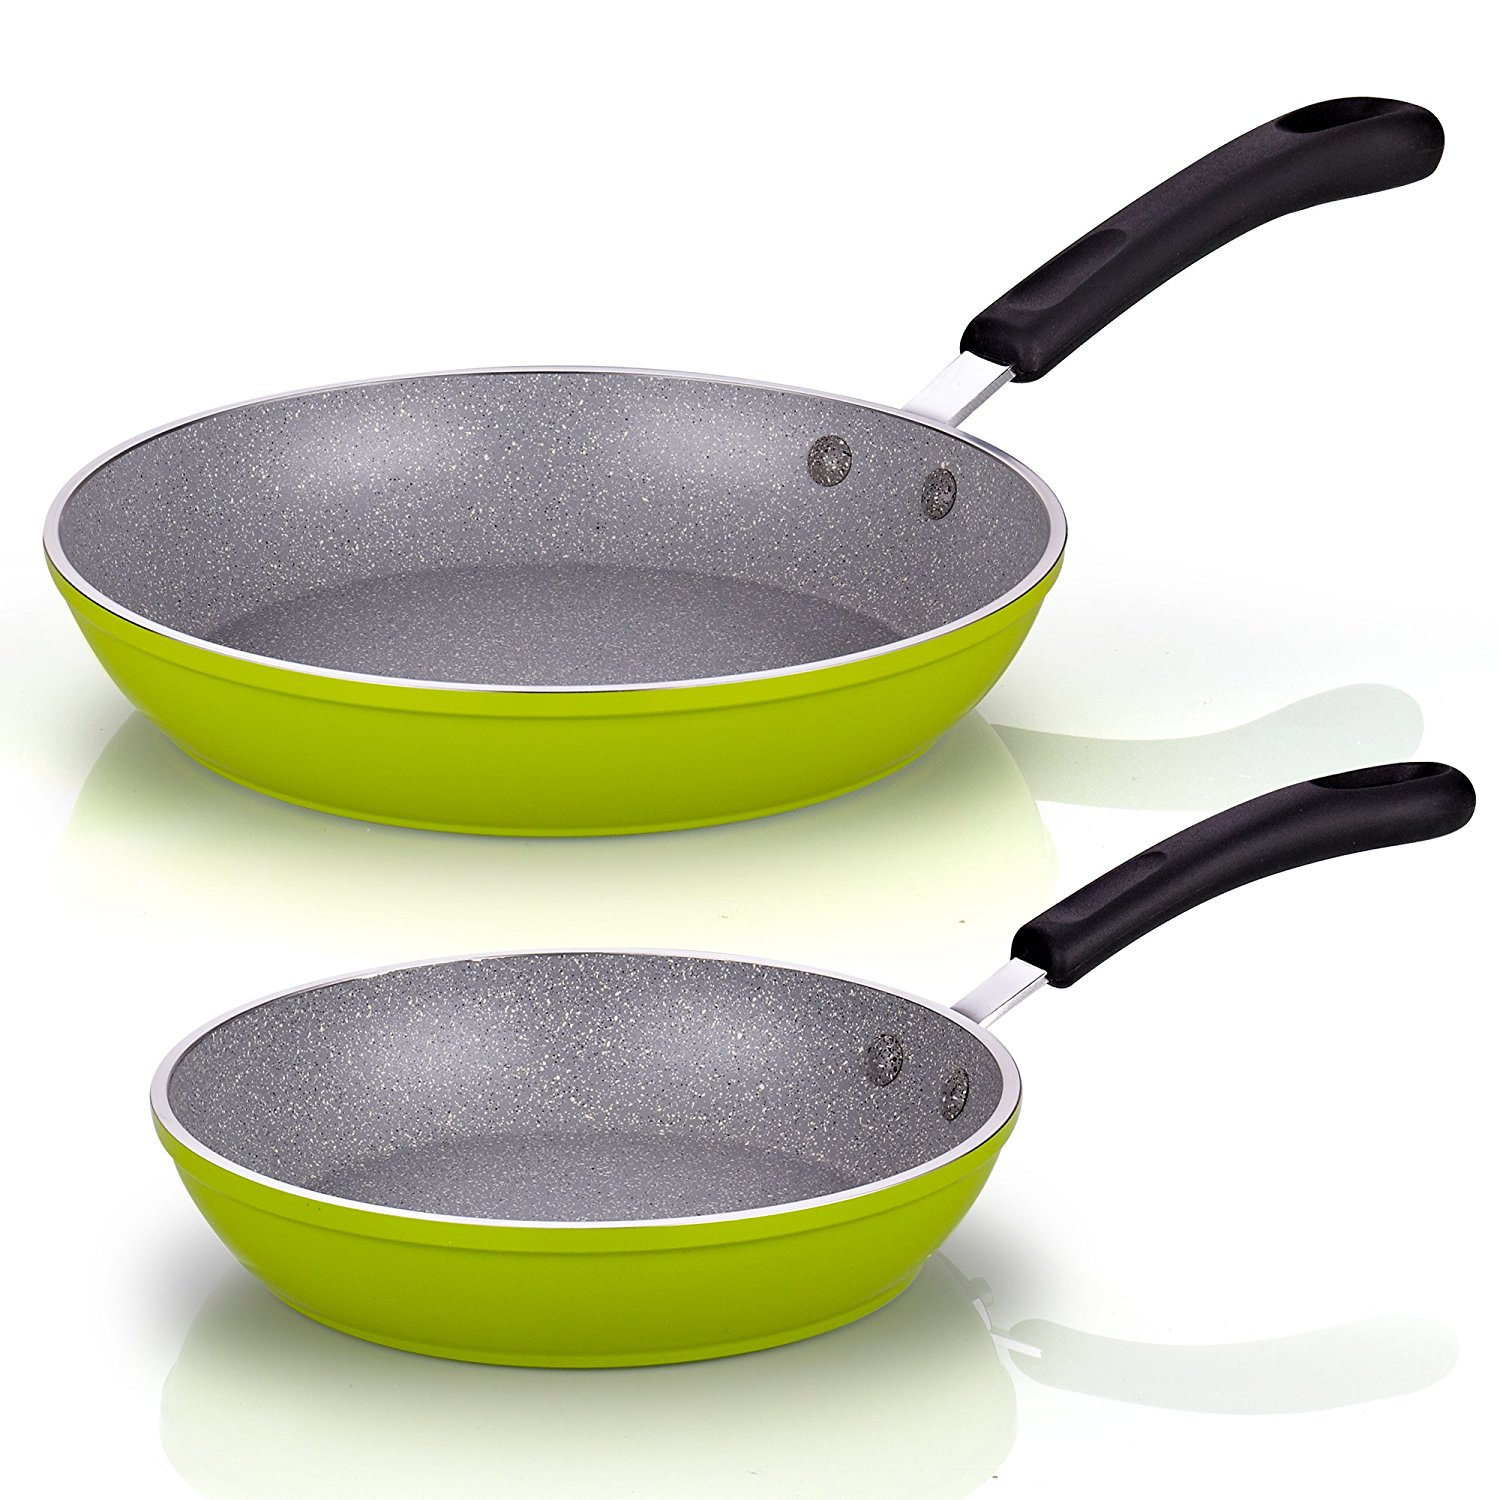 "02499 8"" and 10"" Frying Pan Saute Skillet with Nonstick Coating Heavy Gauge, Green, Frying pan/sauté pan 8-inch diameter by 1.7-inch Height,.., By Cook N Home"